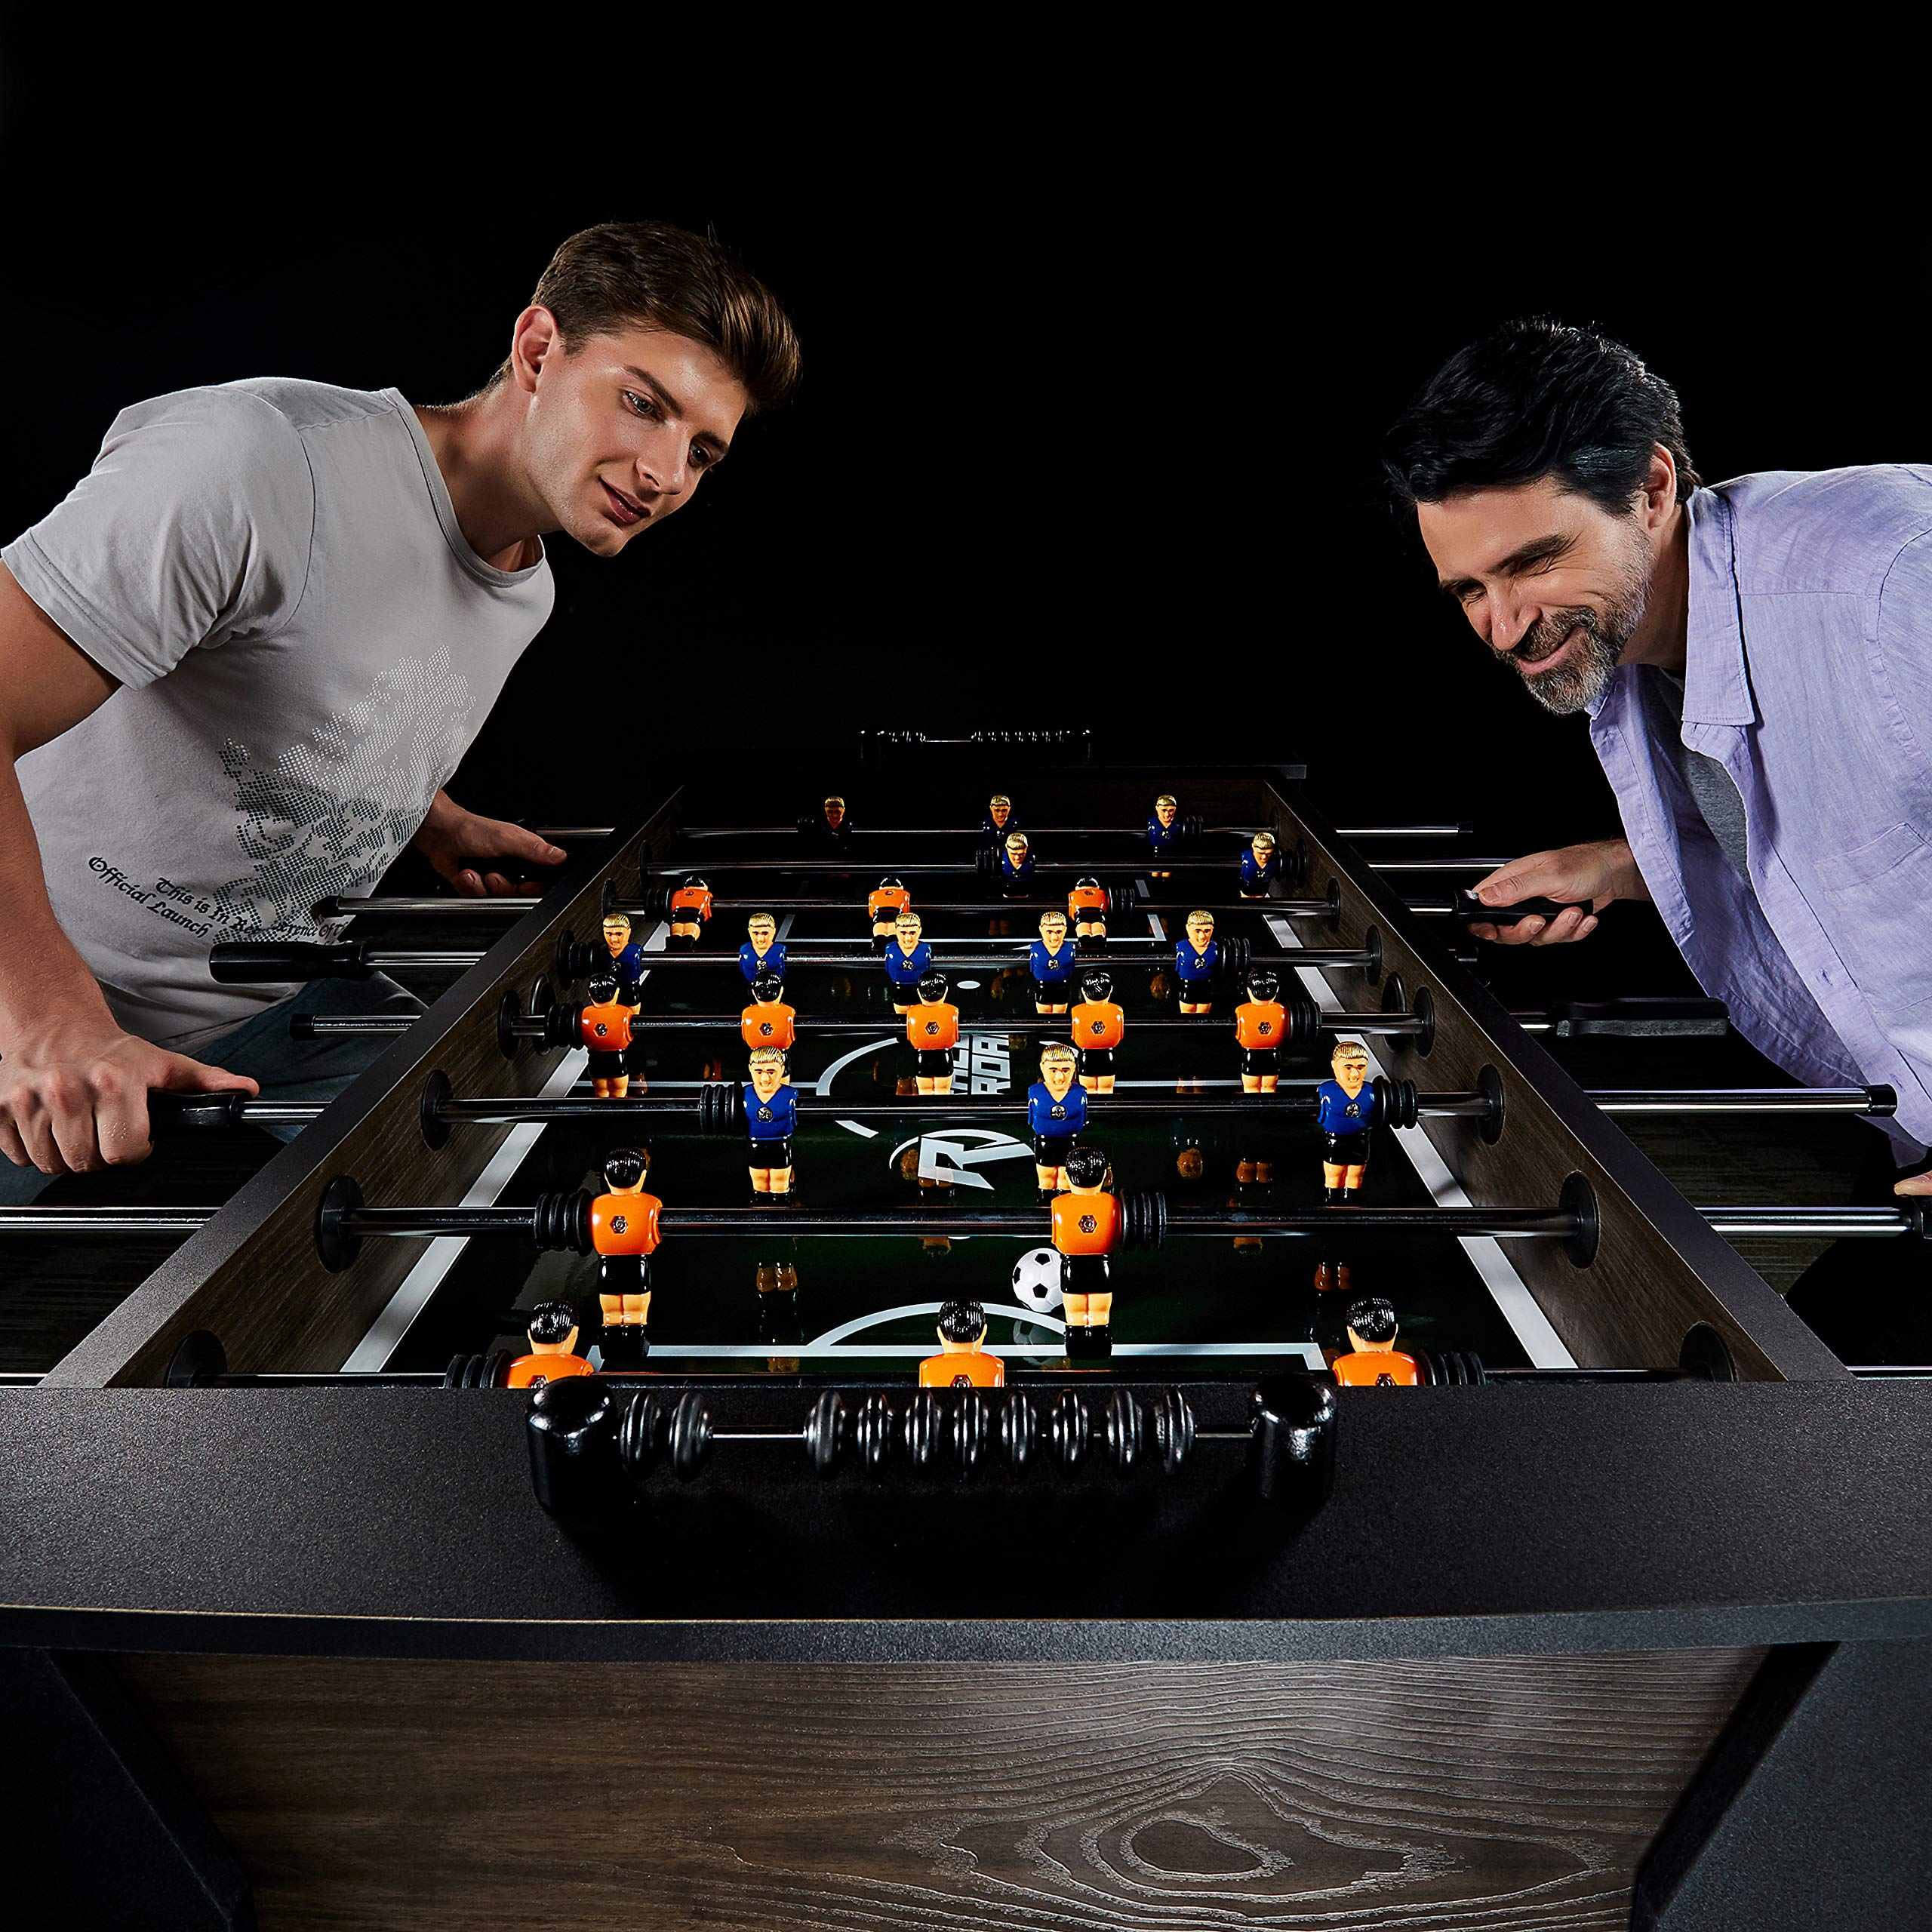 """Rally and Roar Foosball Table Game – 56"""" Standard Size Fun, Multi Person Table Soccer Adults, Kids - Recreational Foosball Games Game Rooms, Arcades, Bars, Parties, Family Night by Rally and Roar (Image #12)"""